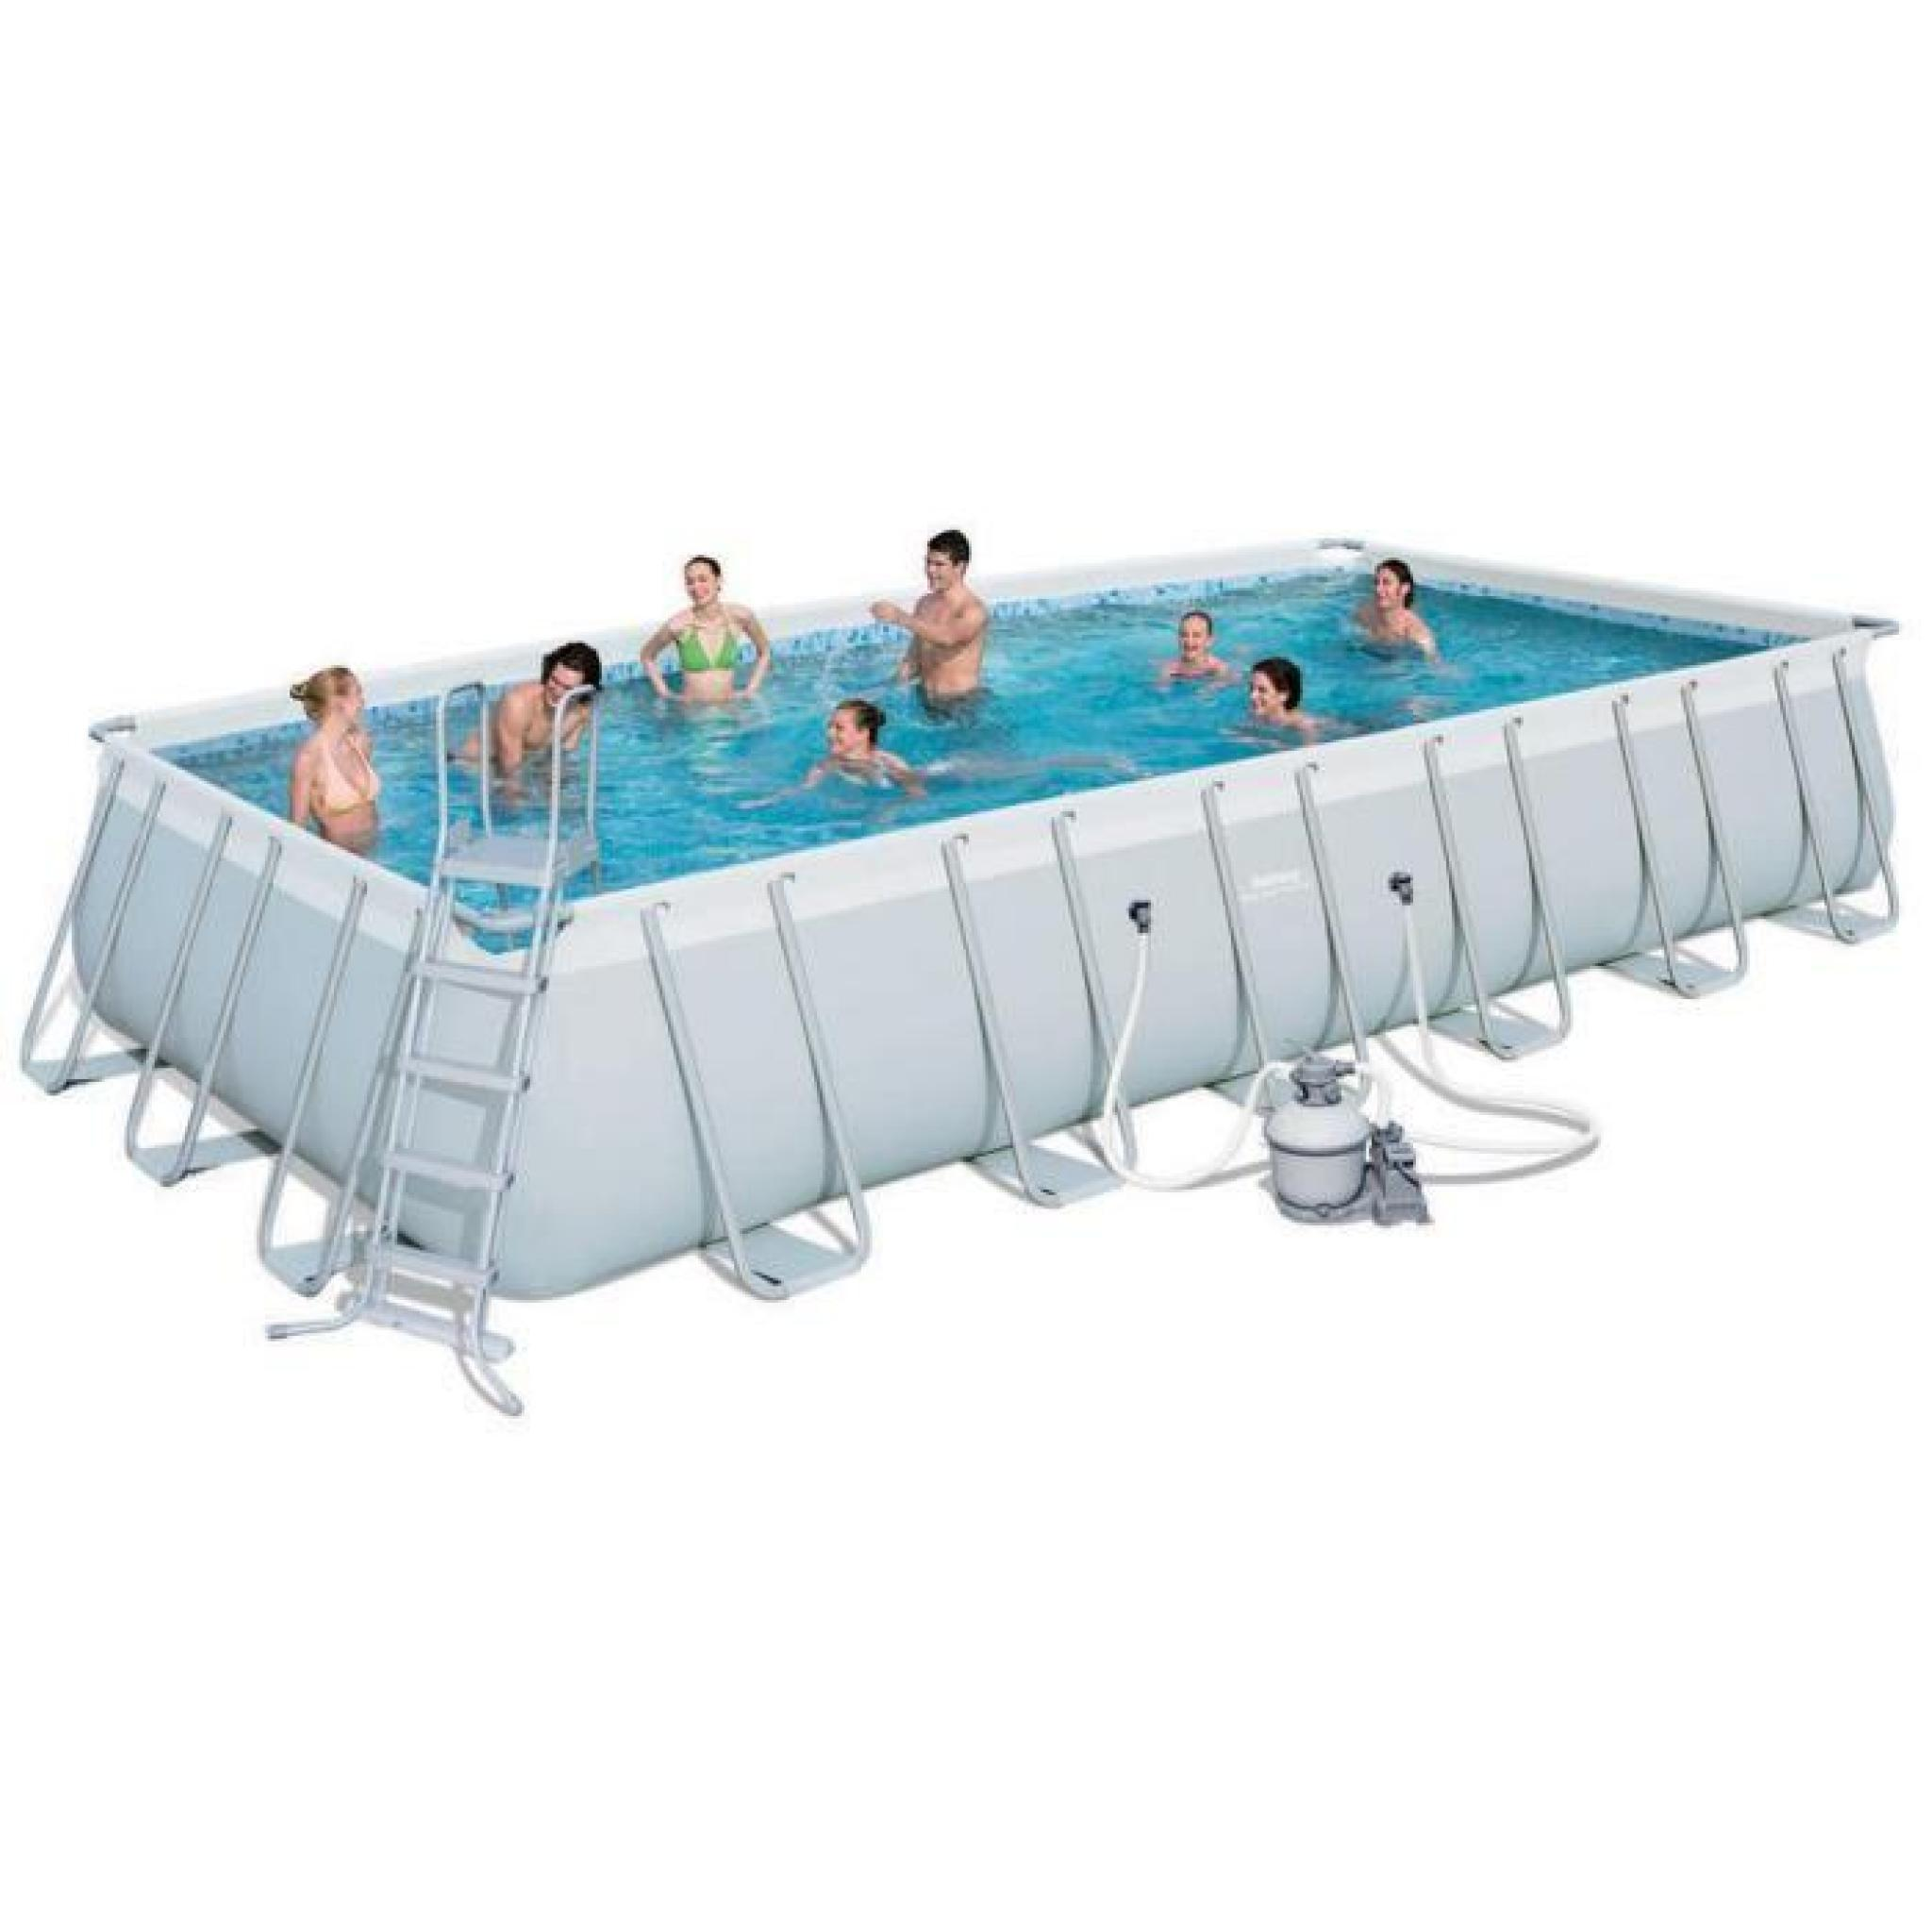 Piscine autoportante tubulaire power steel rectangl 4m12 for Piscine autoportante